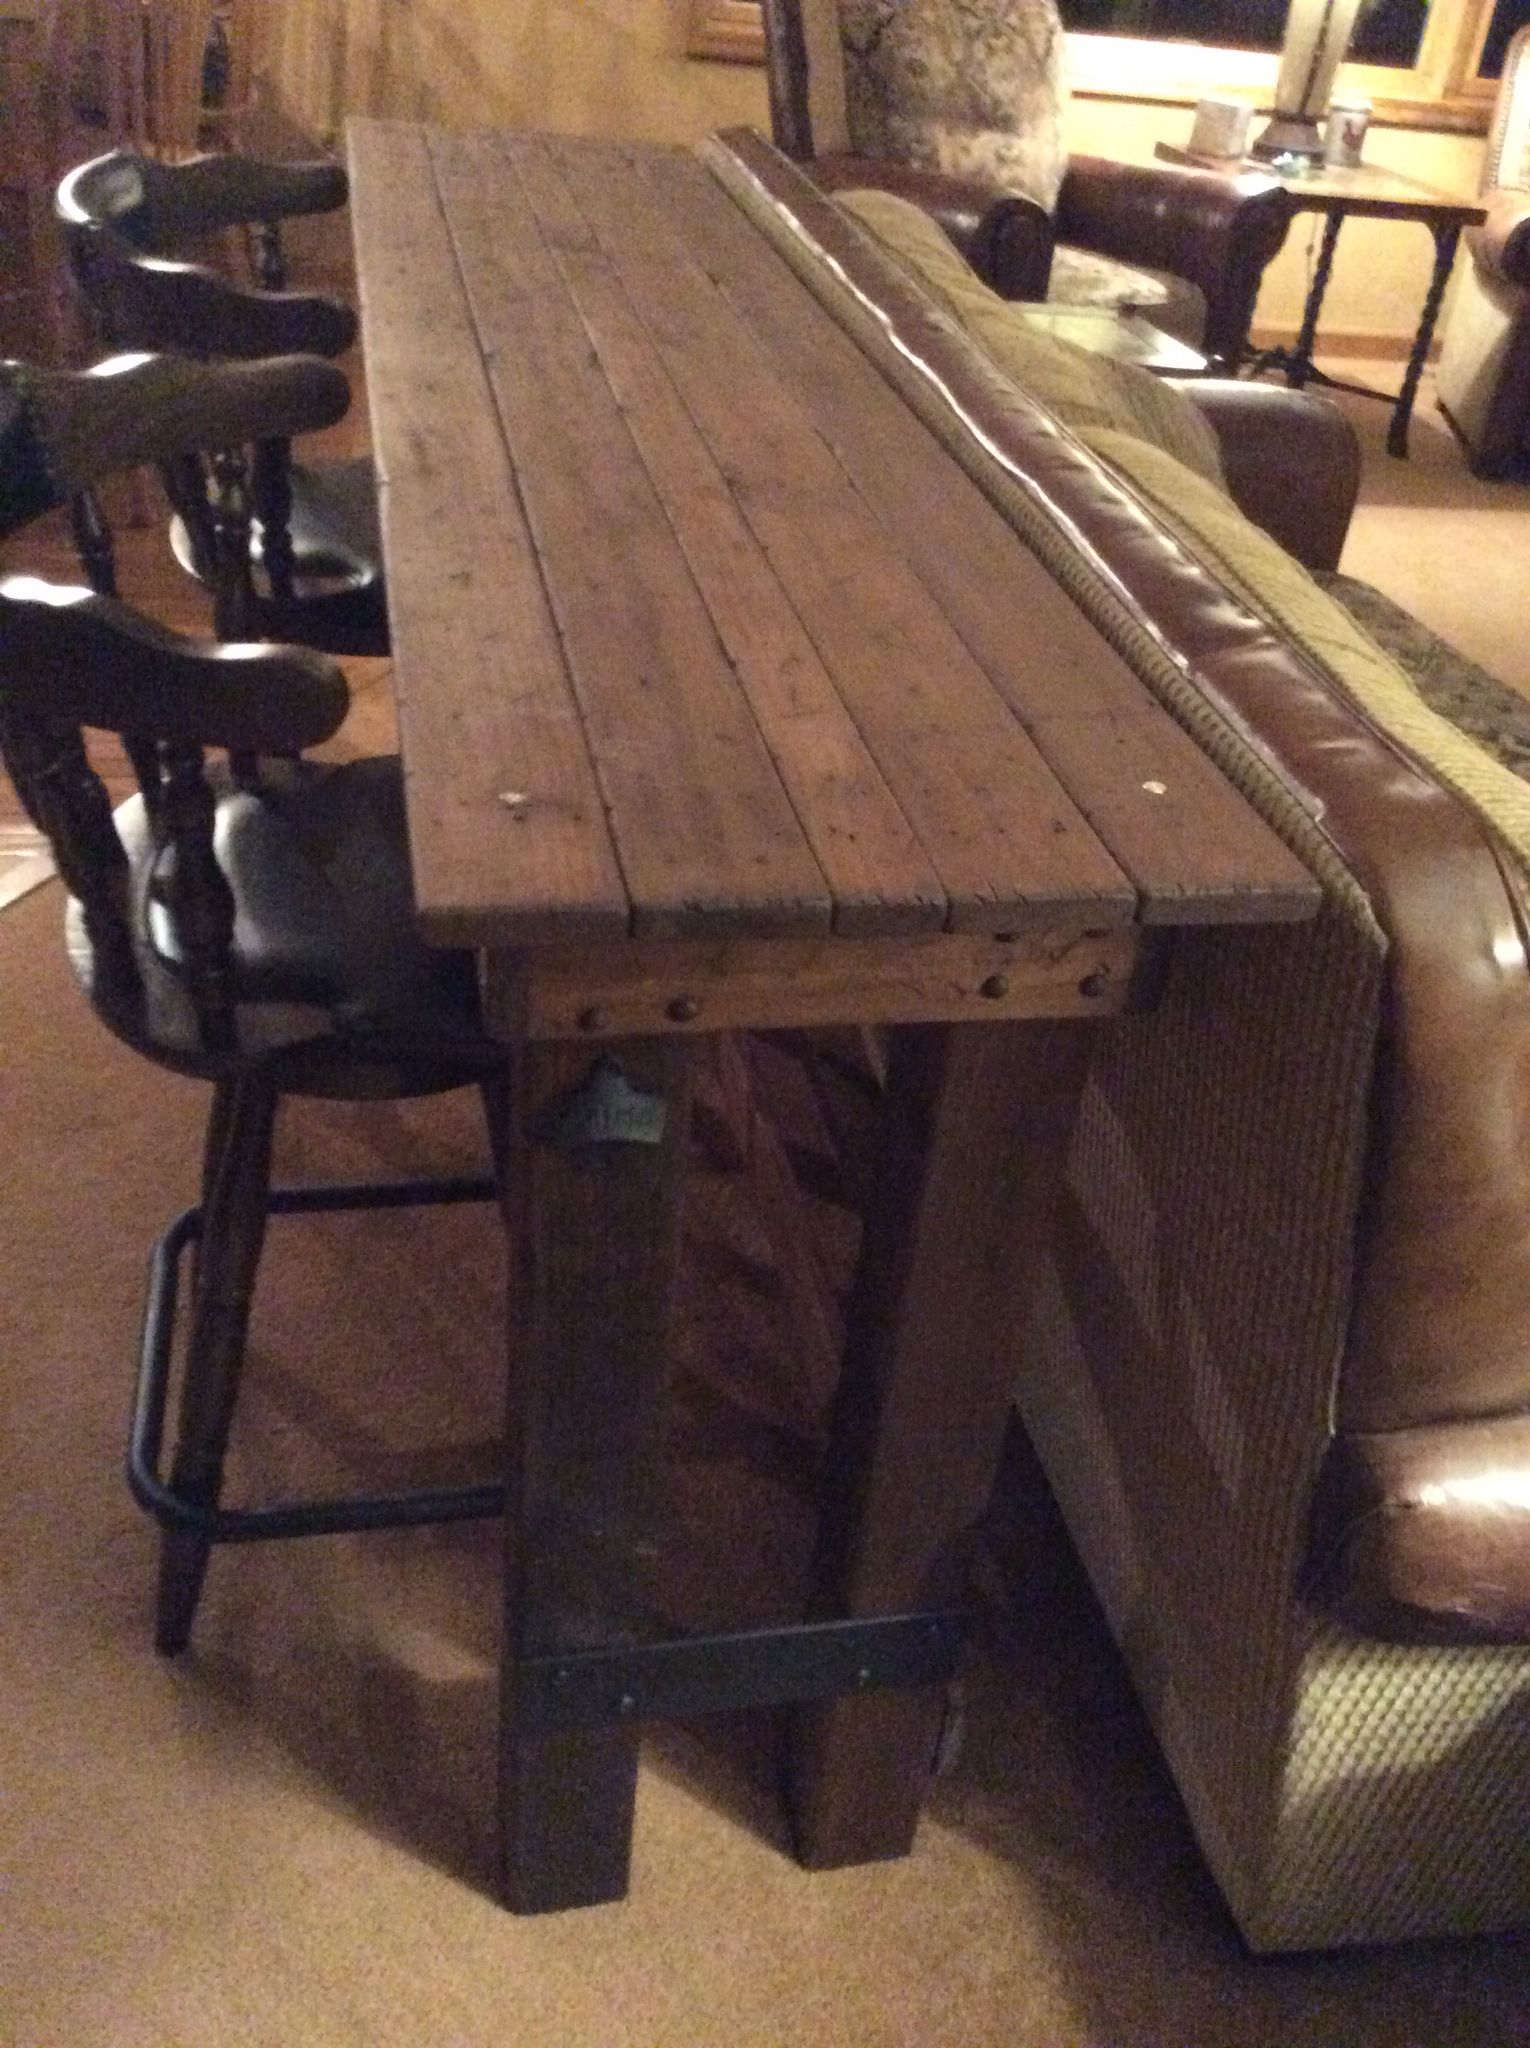 Bar Table For Behind A Couch This Would Be Great For Watching And